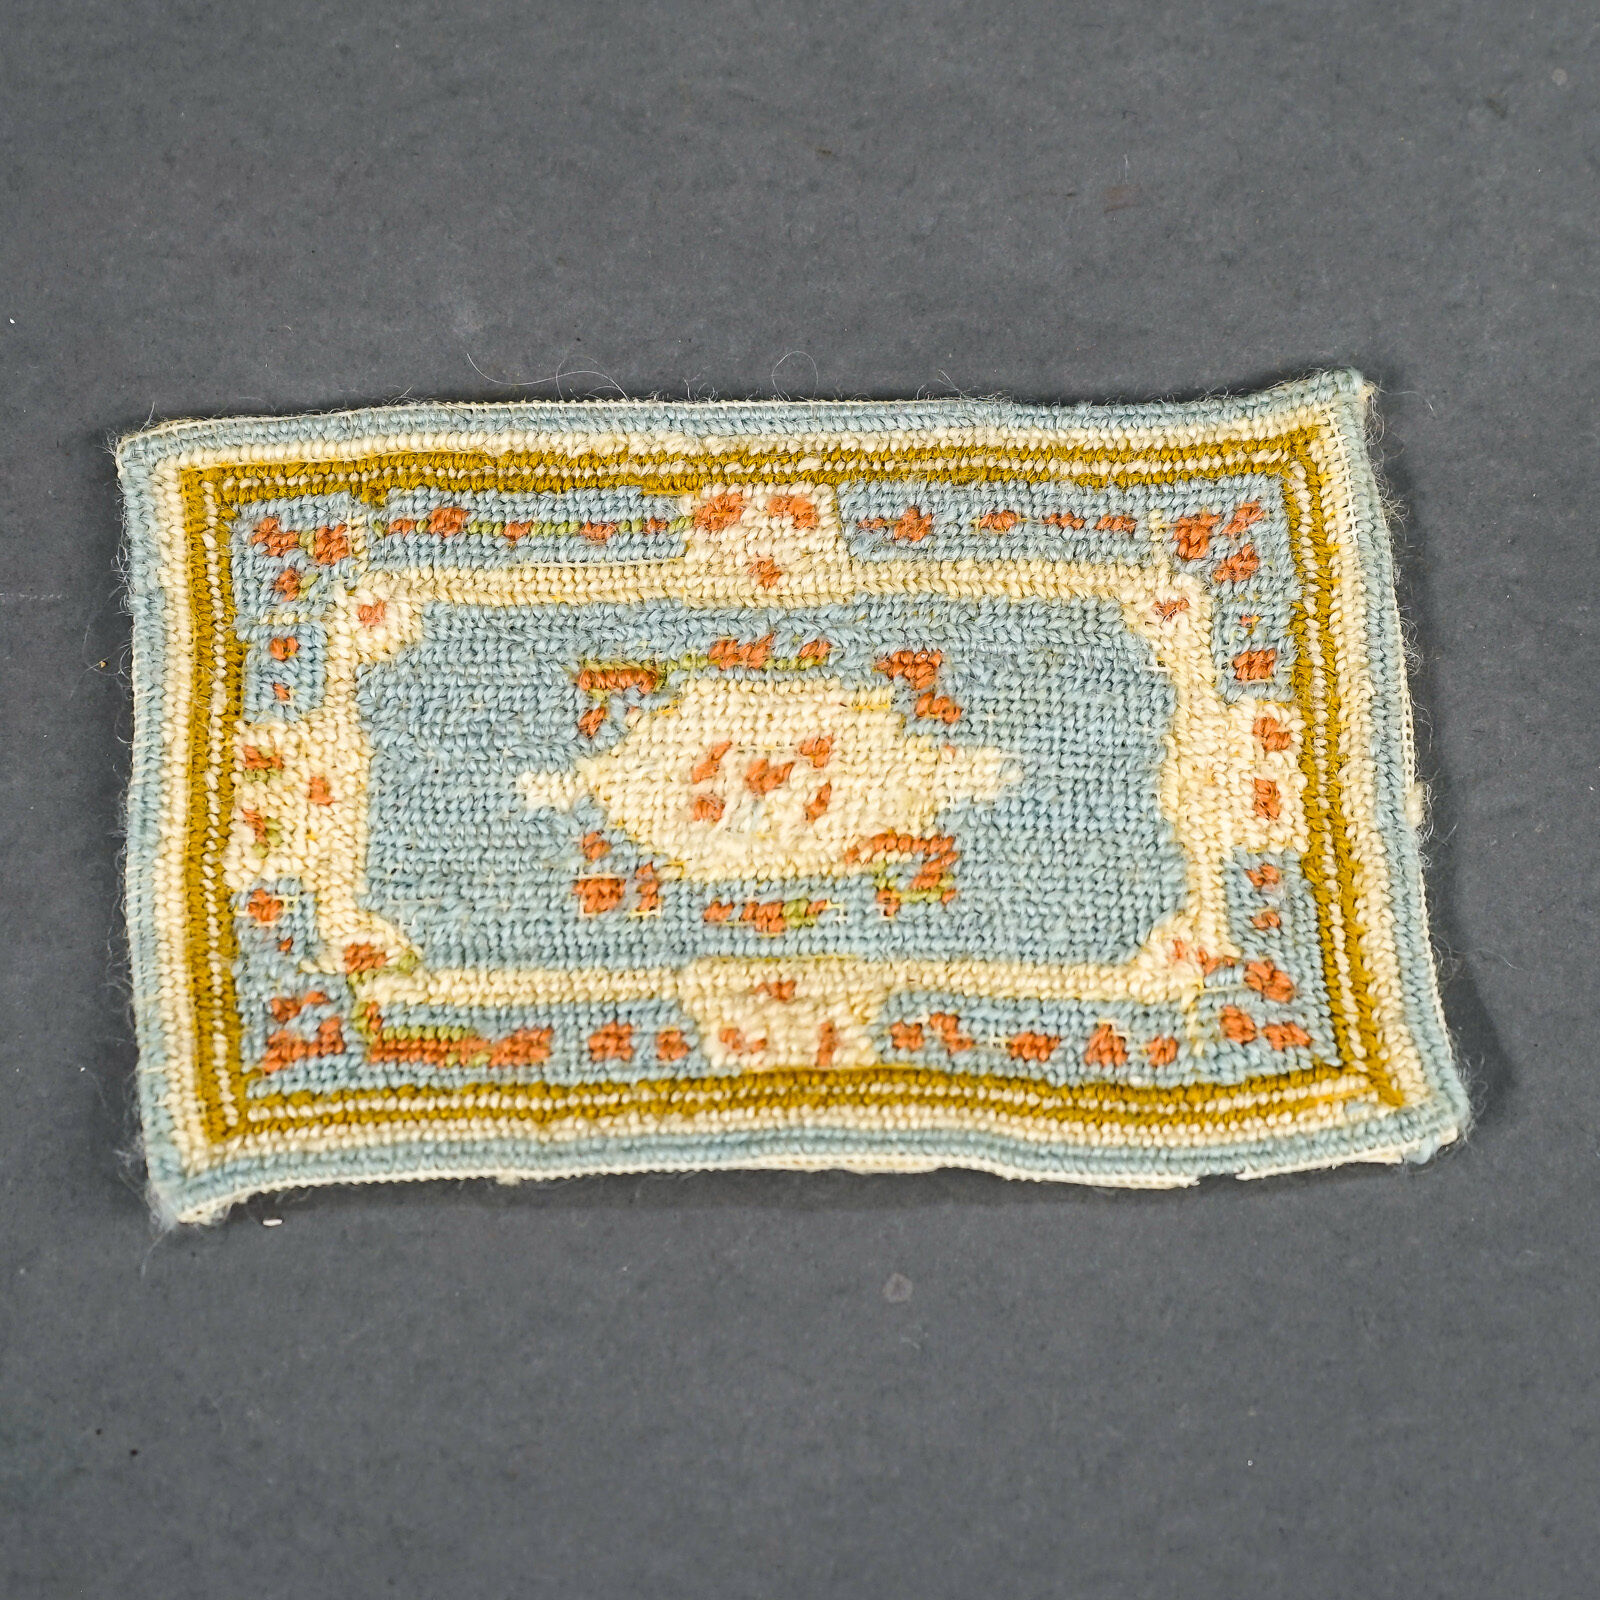 Vintage bambolahouse Furniture Rug He-fatto Petit-Point Needlepoint 5.5  x 3.5